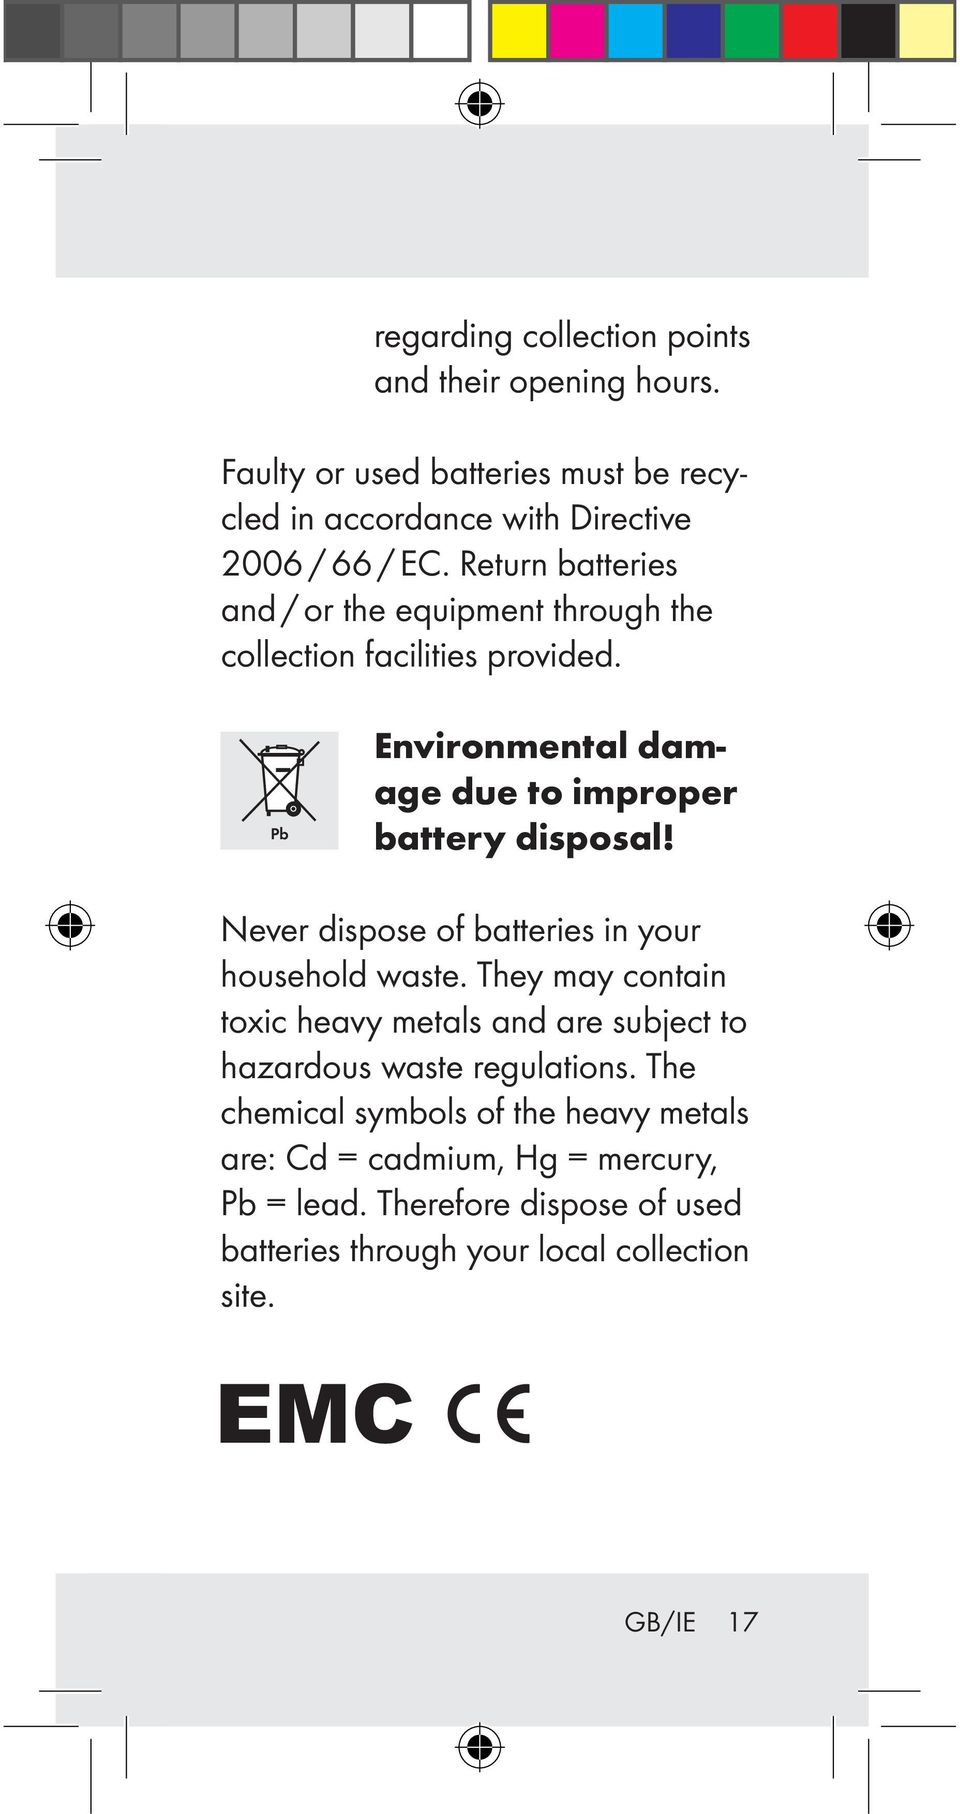 Never dispose of batteries in your household waste. They may contain toxic heavy metals and are subject to hazardous waste regulations.